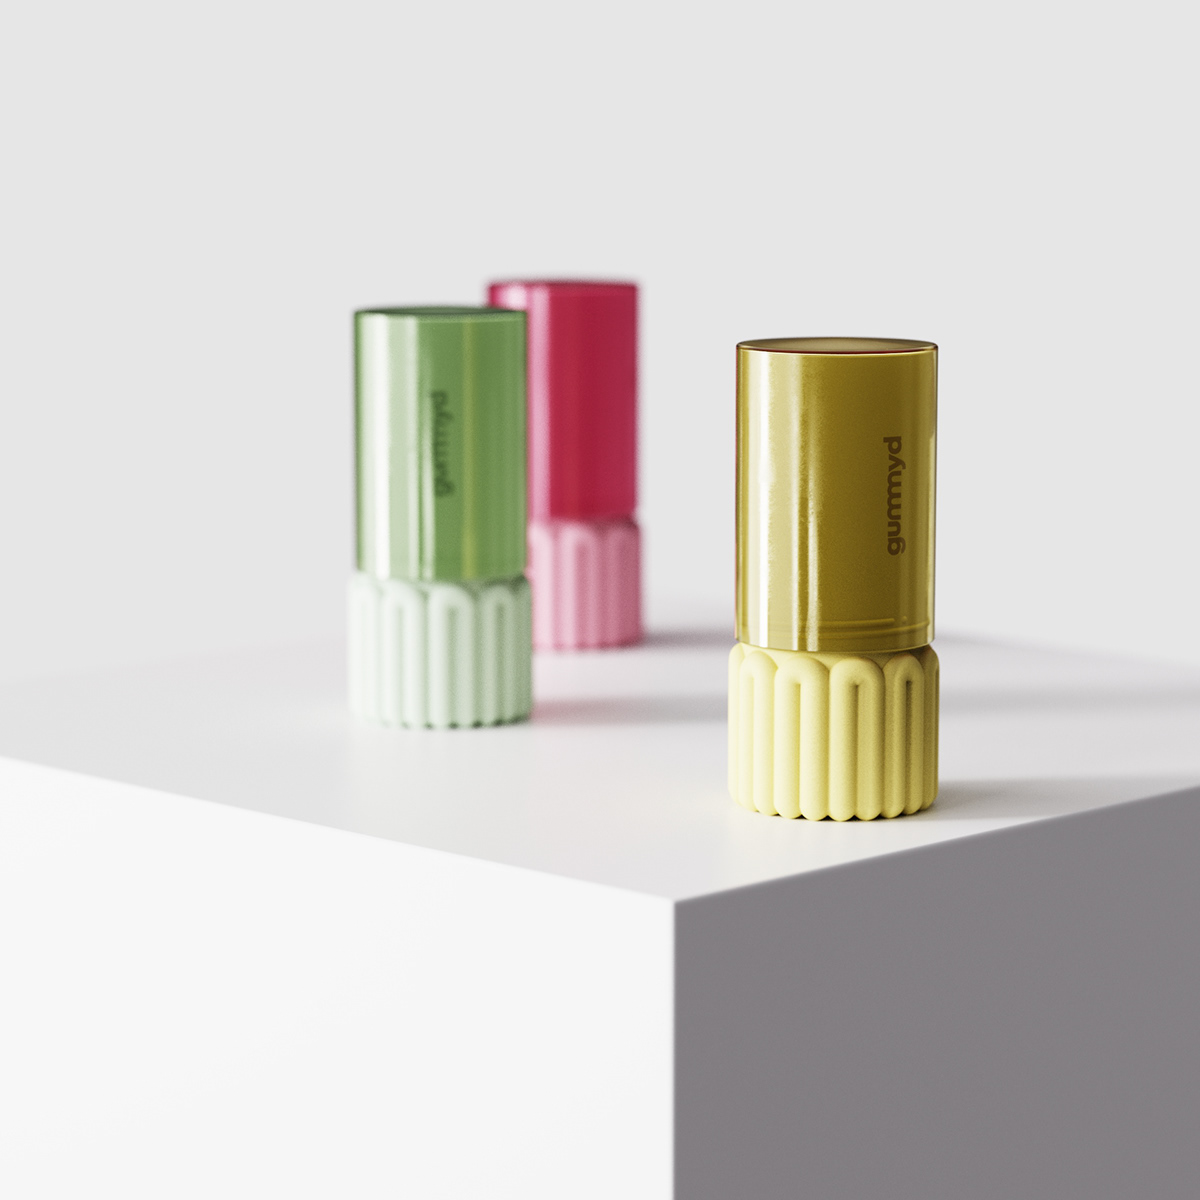 container diseño industrial gummies healthy industrial design  product design  sport colorful energy Fun